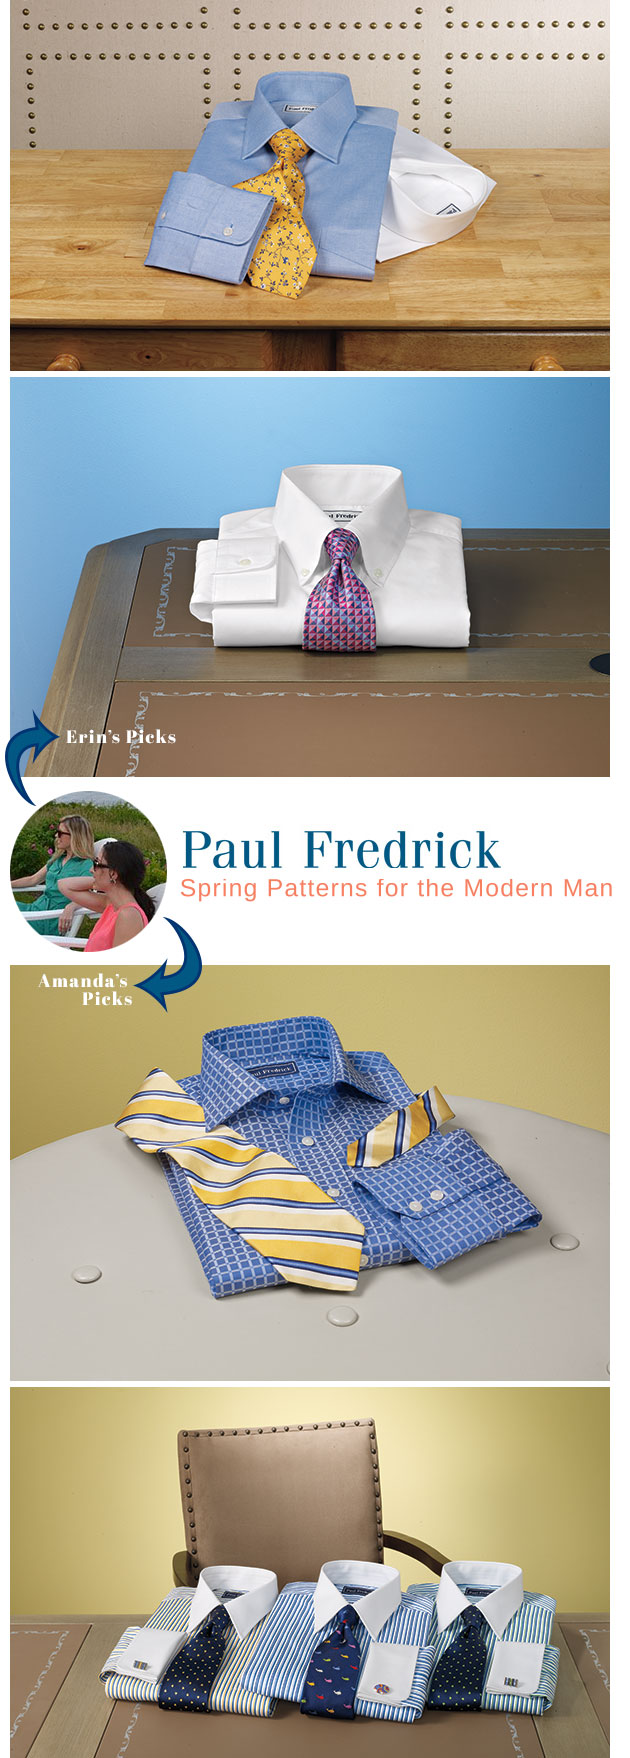 Paul Frederick Spring Launch